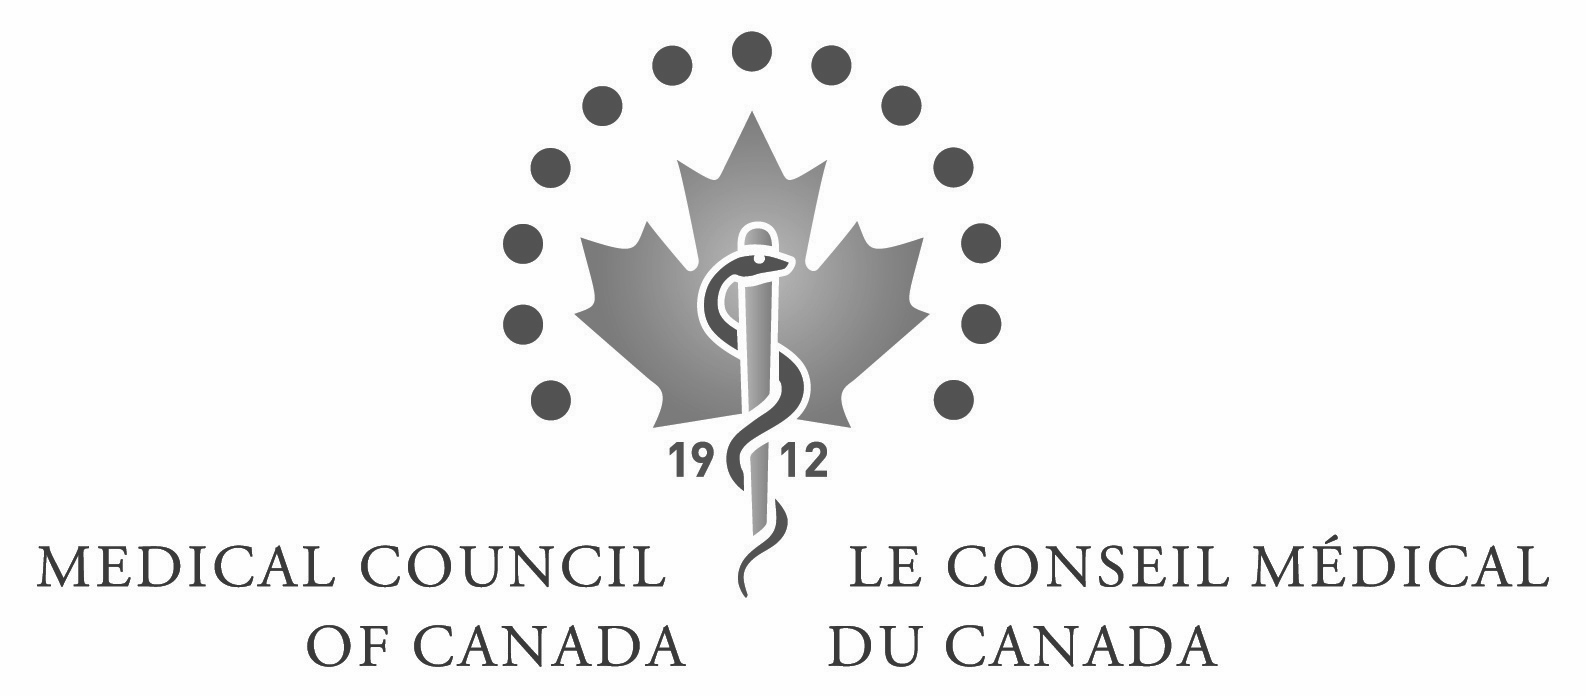 The Medical Council of Canada (MCC)